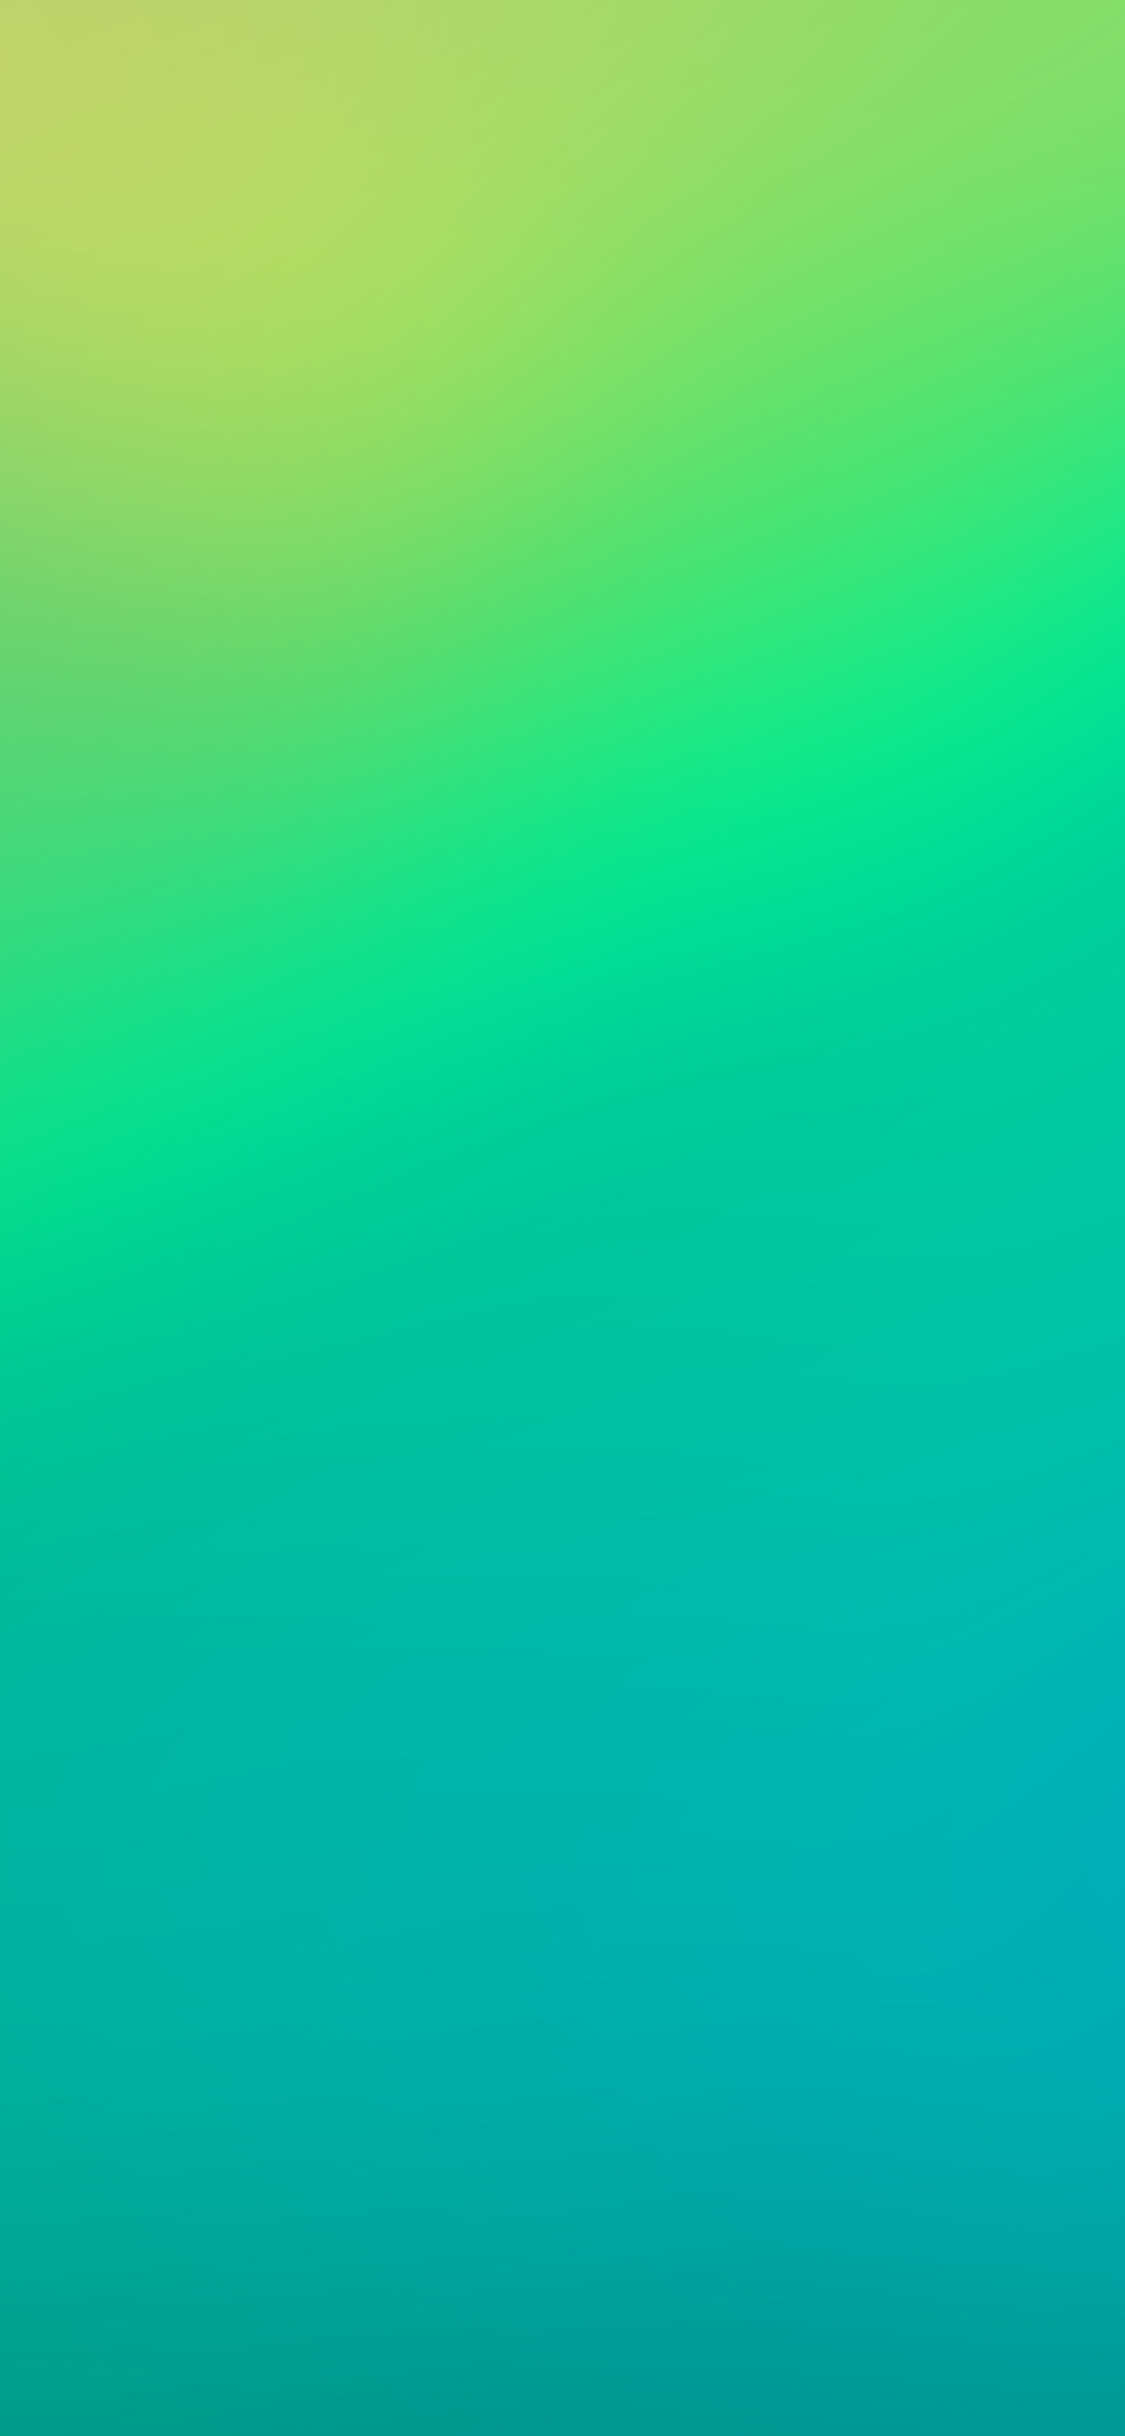 iPhoneXpapers.com-Apple-iPhone-wallpaper-sk33-green-yellow-blue-emrald-blur-gradation